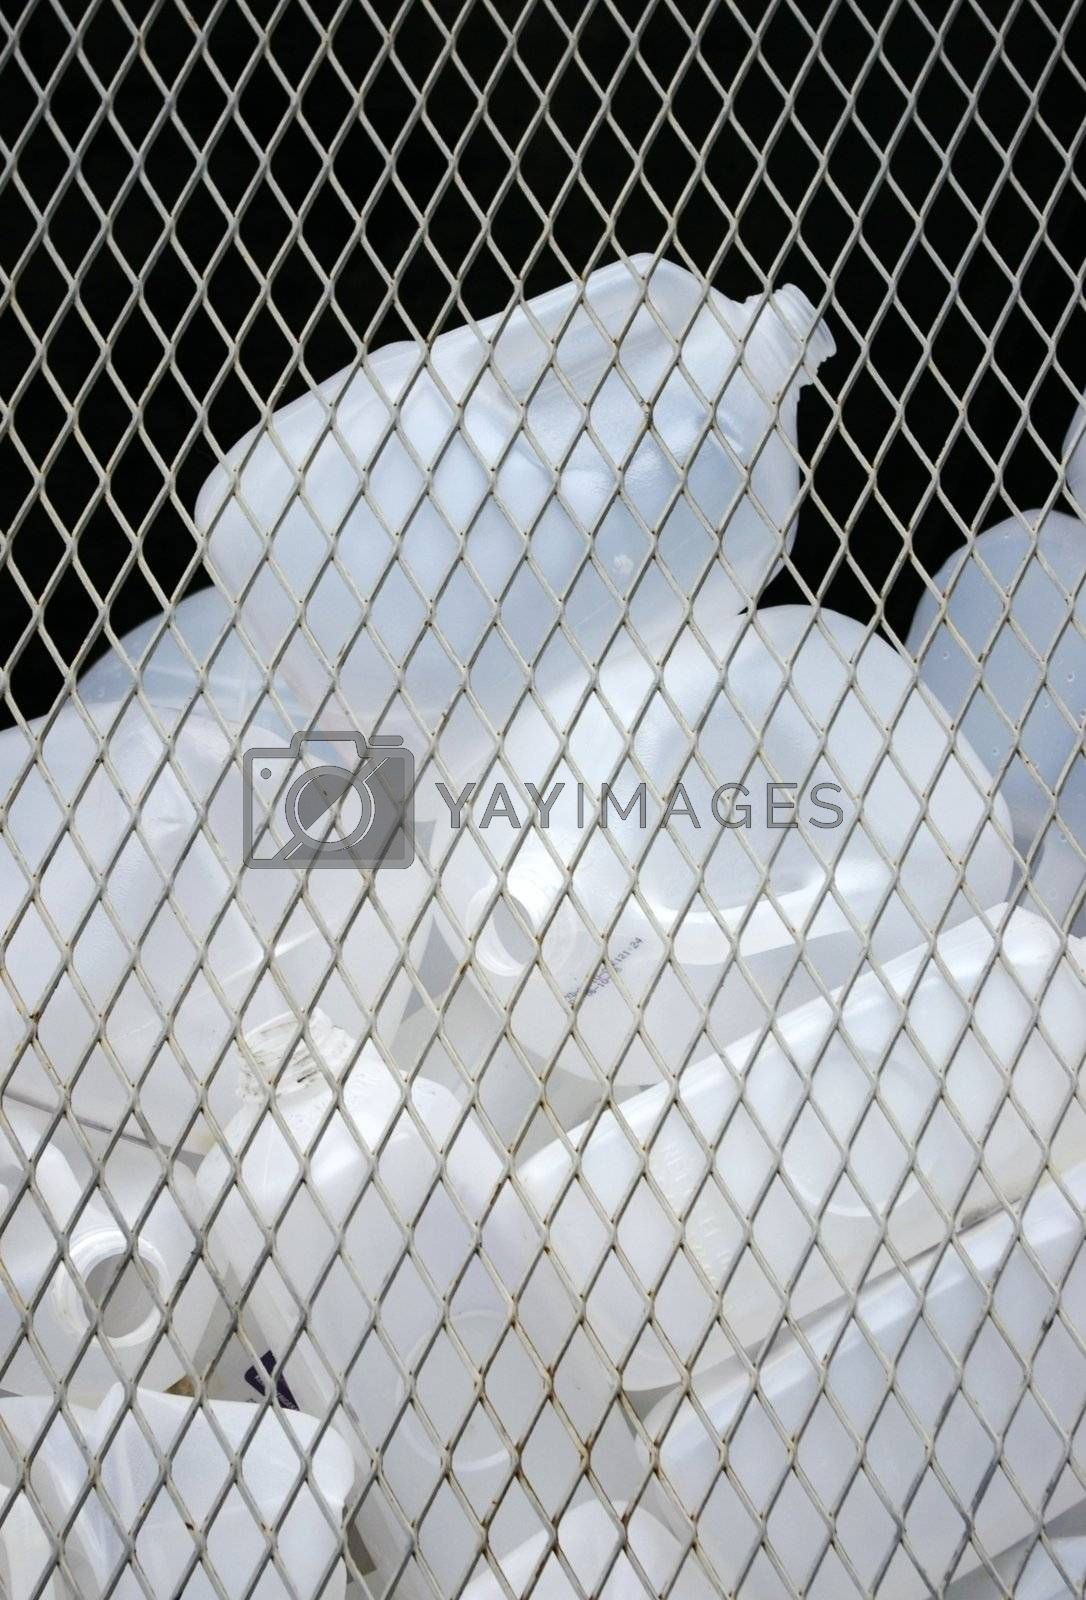 Empty plastic containers waiting in a bin at a recycling center.